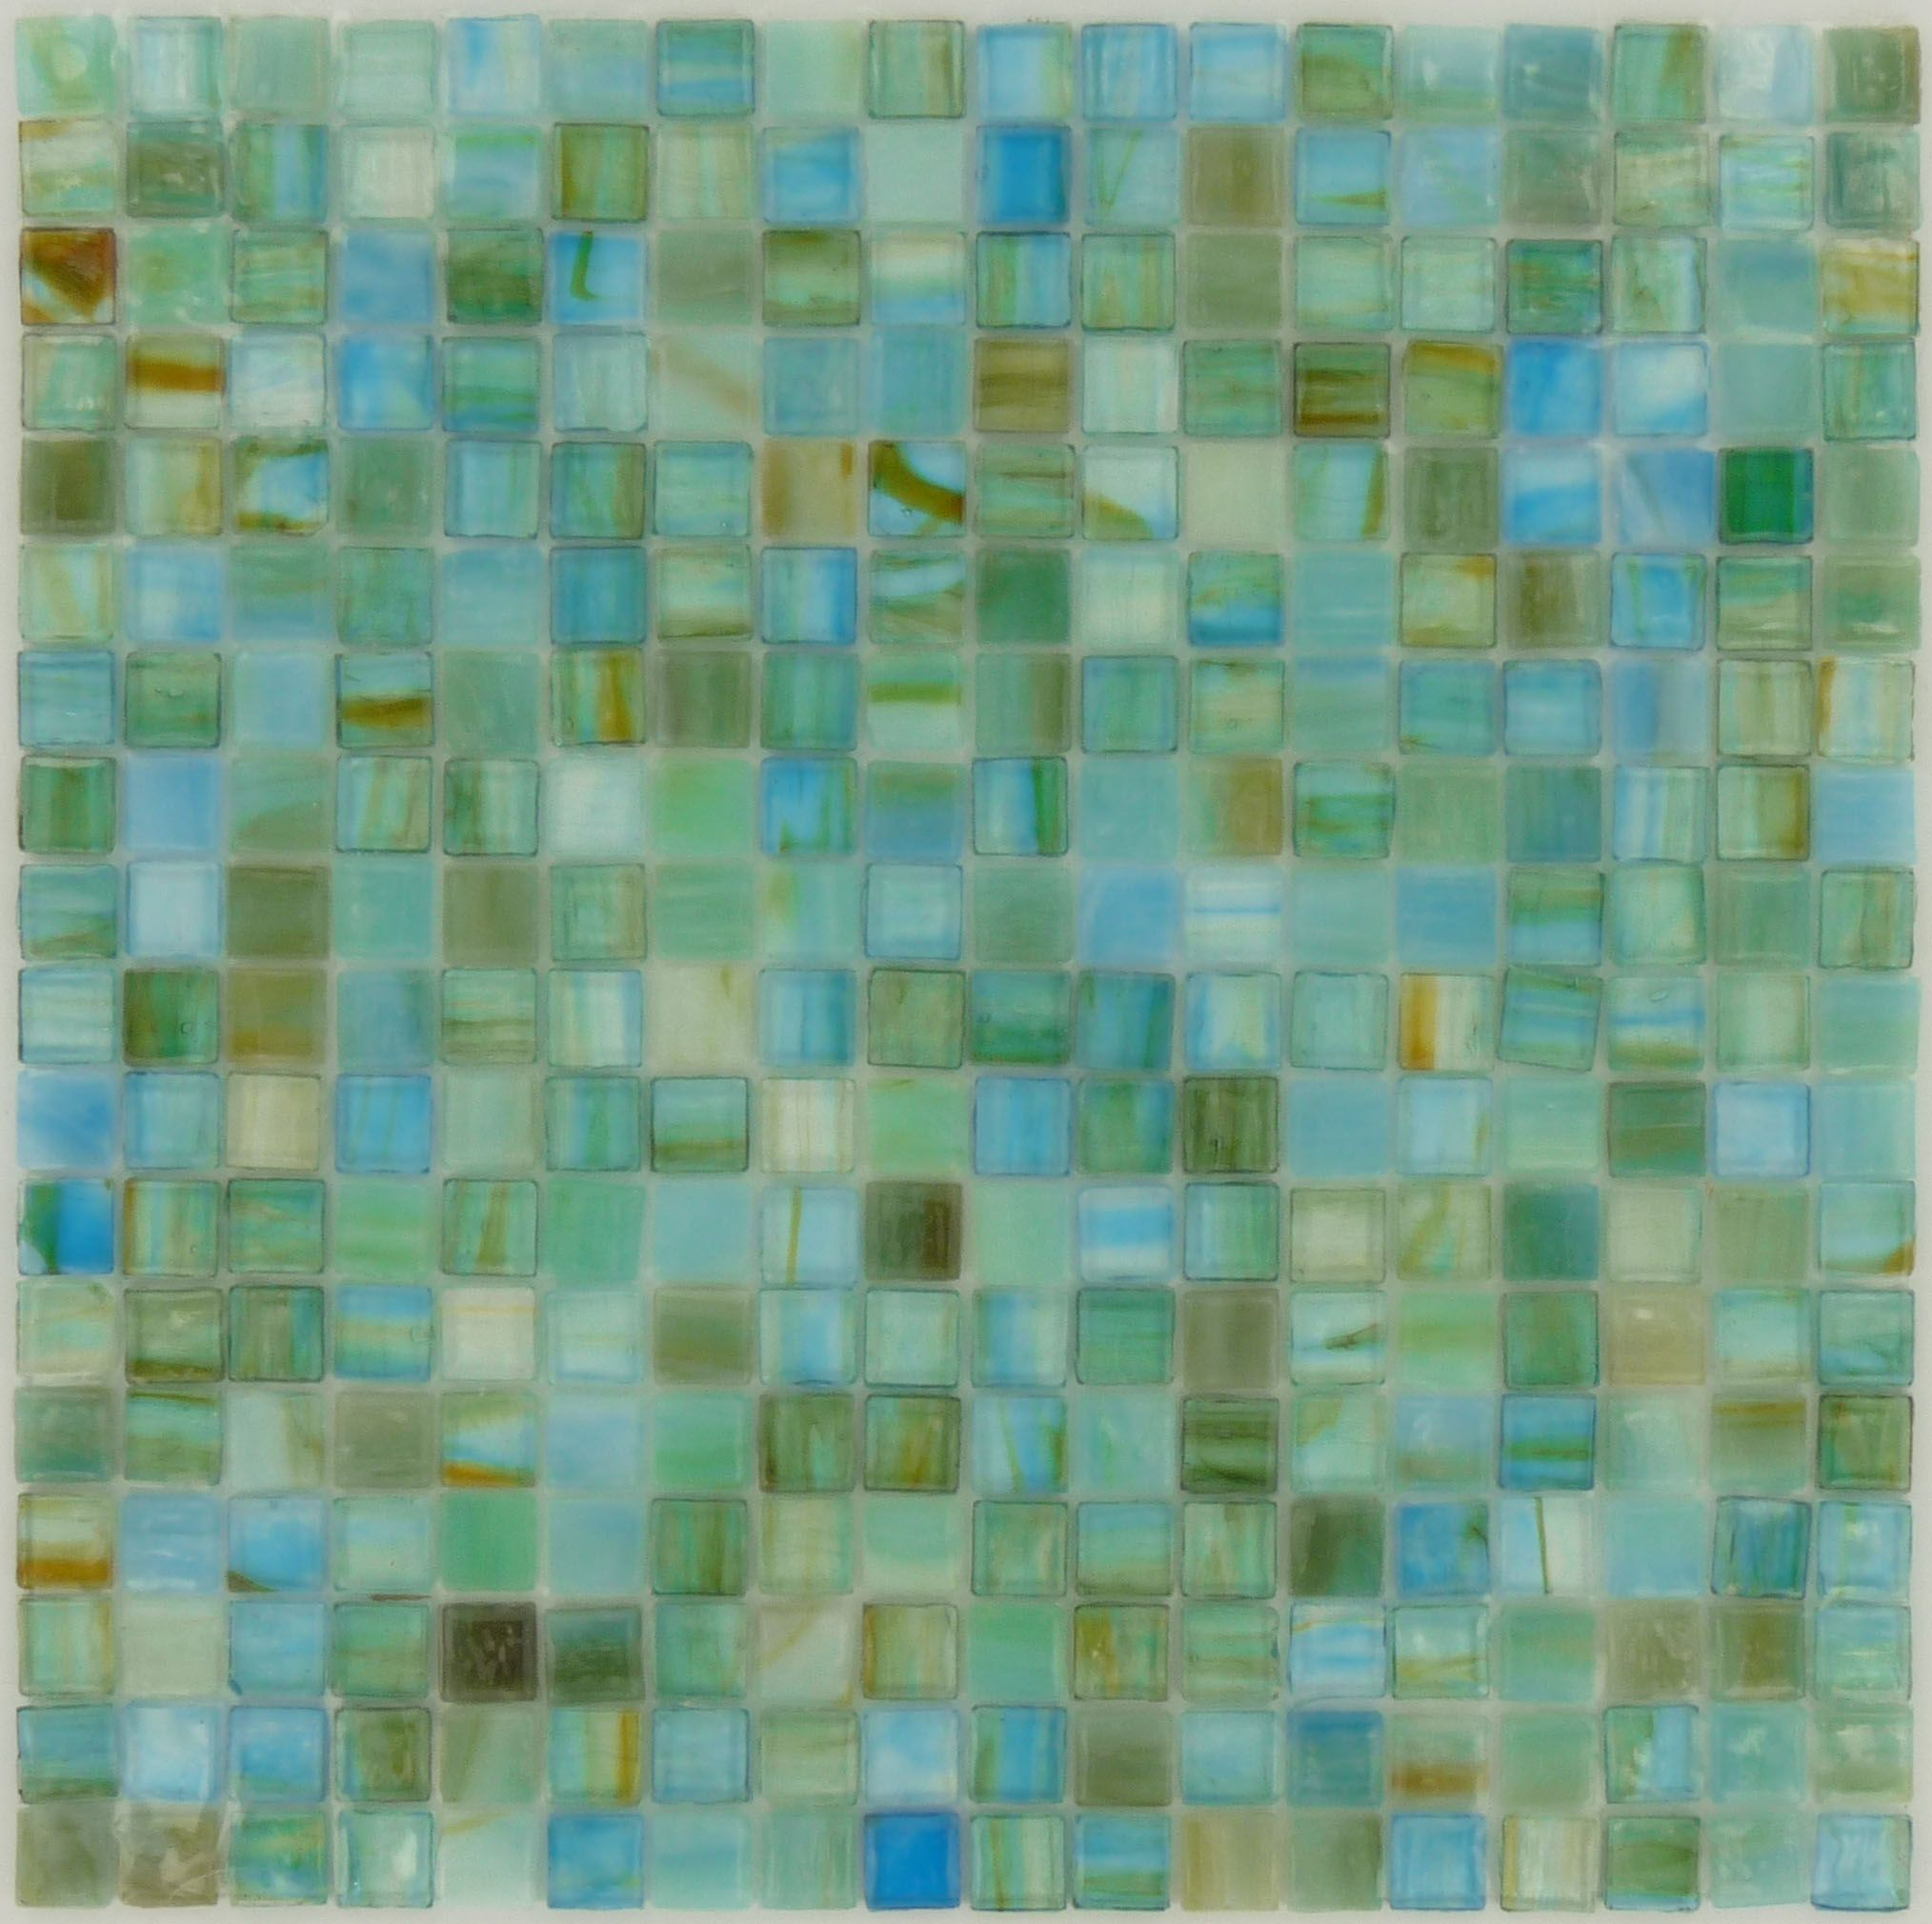 "Glass Tiles In Bathroom: Botanical Glass Sea Glass Tiles, 5/8"" X 5/8"", Prairie"